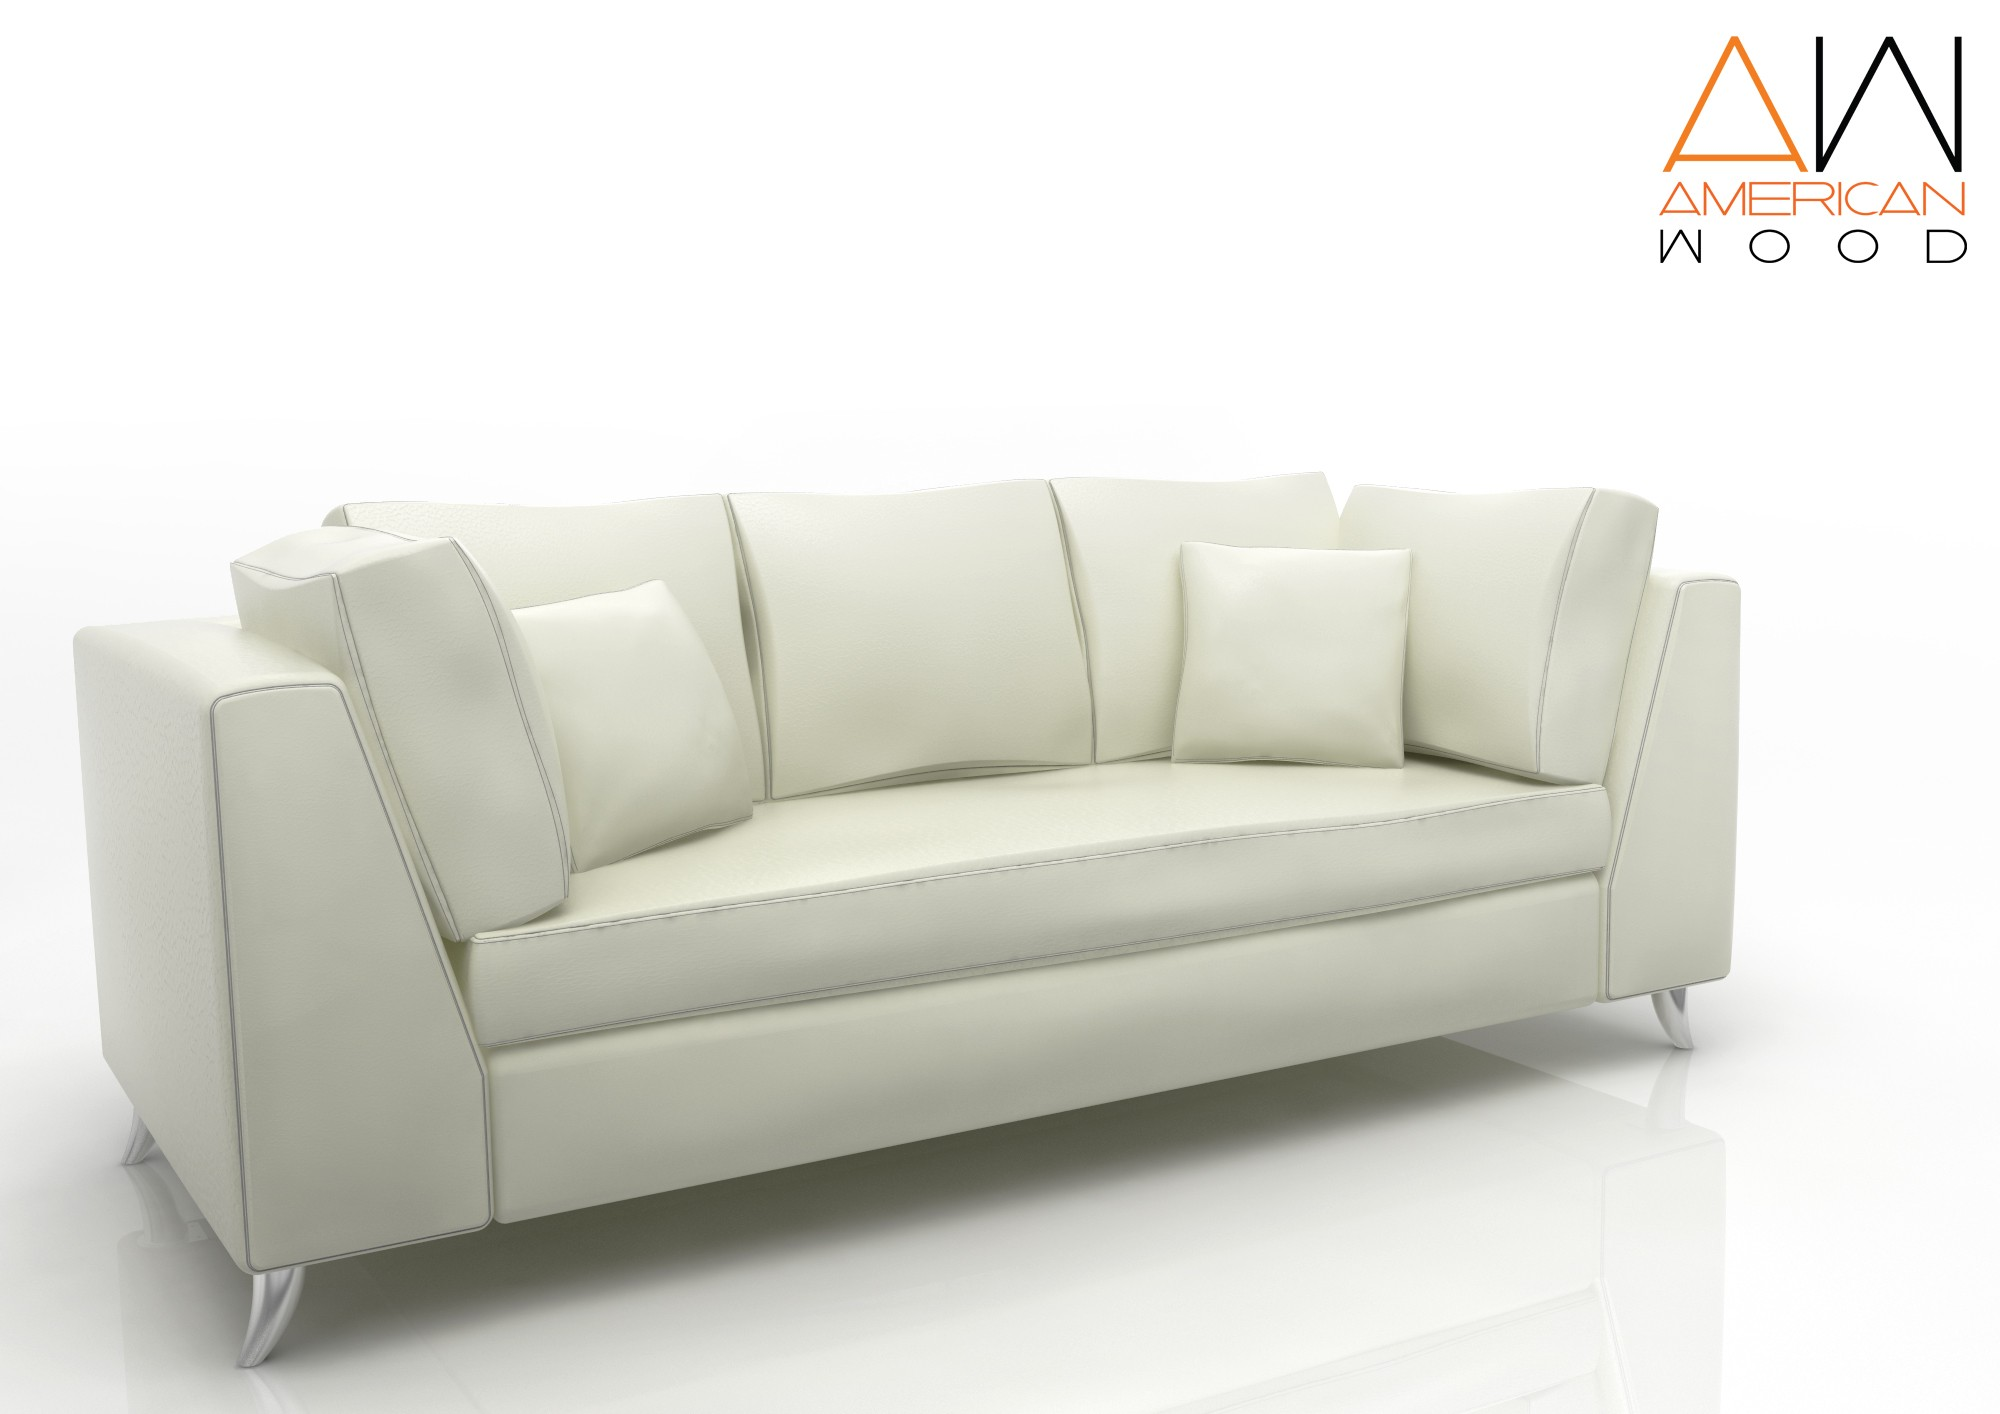 Sofa New 3 cuerpos American Wood blanco